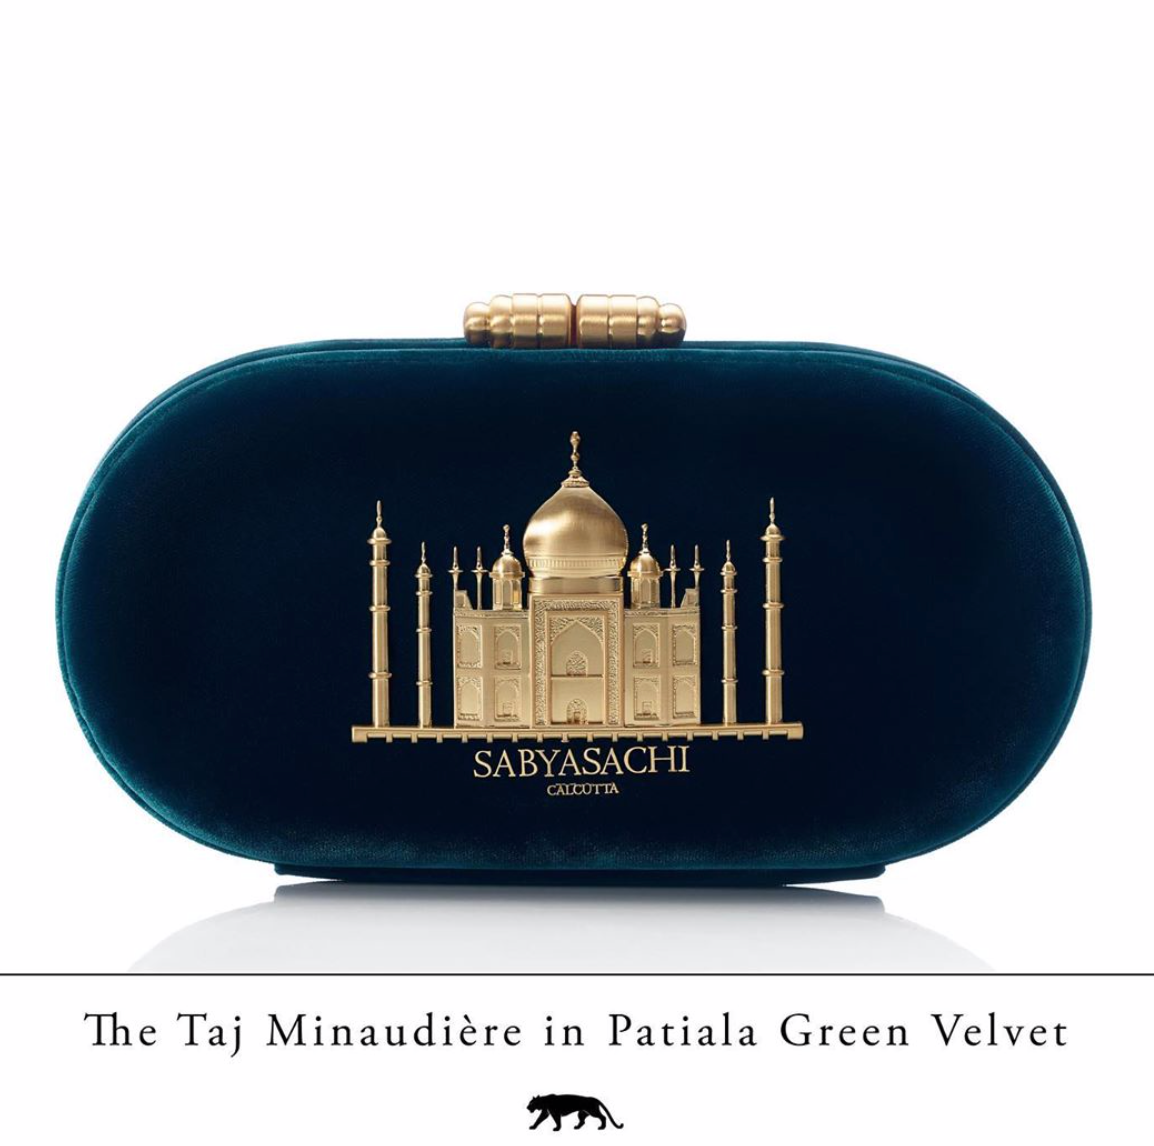 Sabyasachi Taj Minaudiere in Patiala Green Velvet Clutch - The Grand Trunk